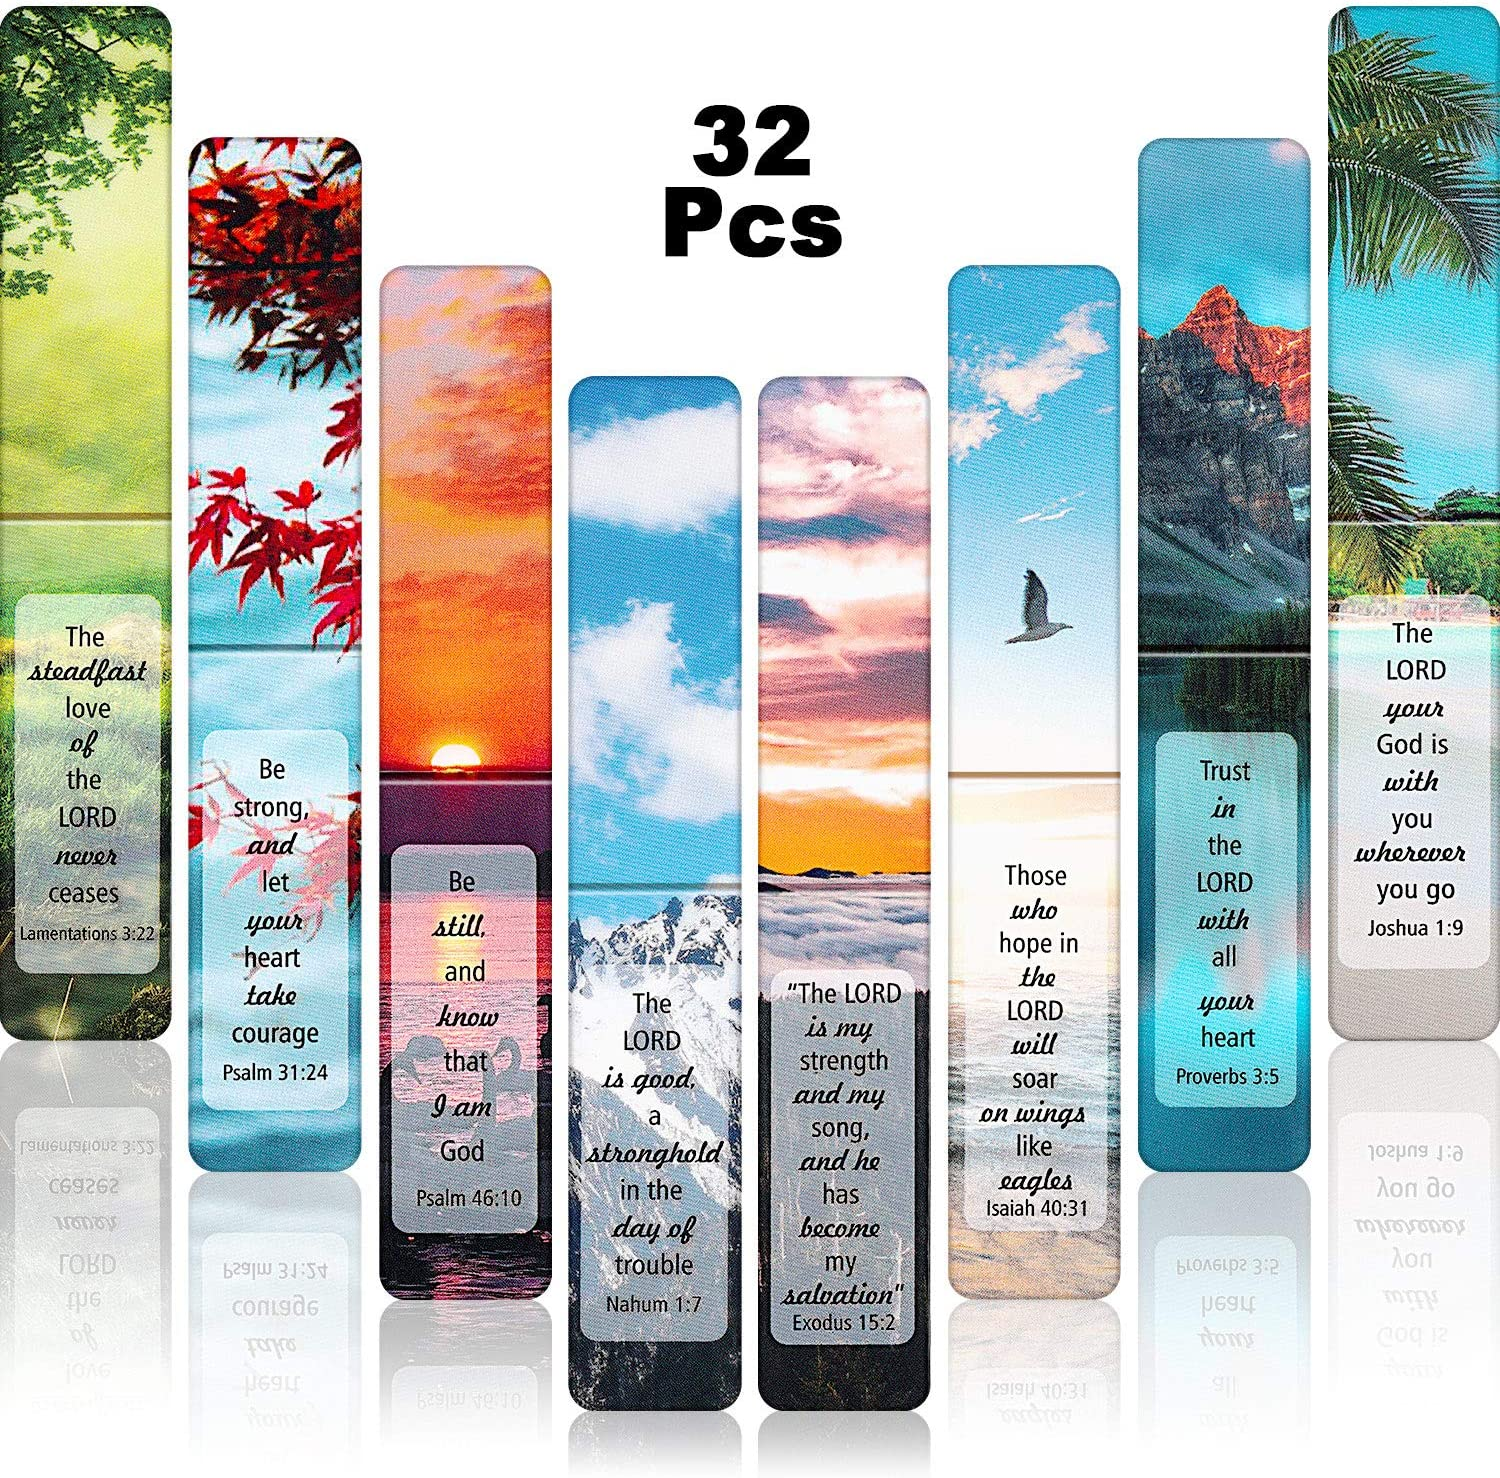 32 Pieces Inspirational Bookmarks Magnetic Nature Scenery Magnetic Page Markers Page Clips Bookmarks for Students Teachers School Home Office Supplies